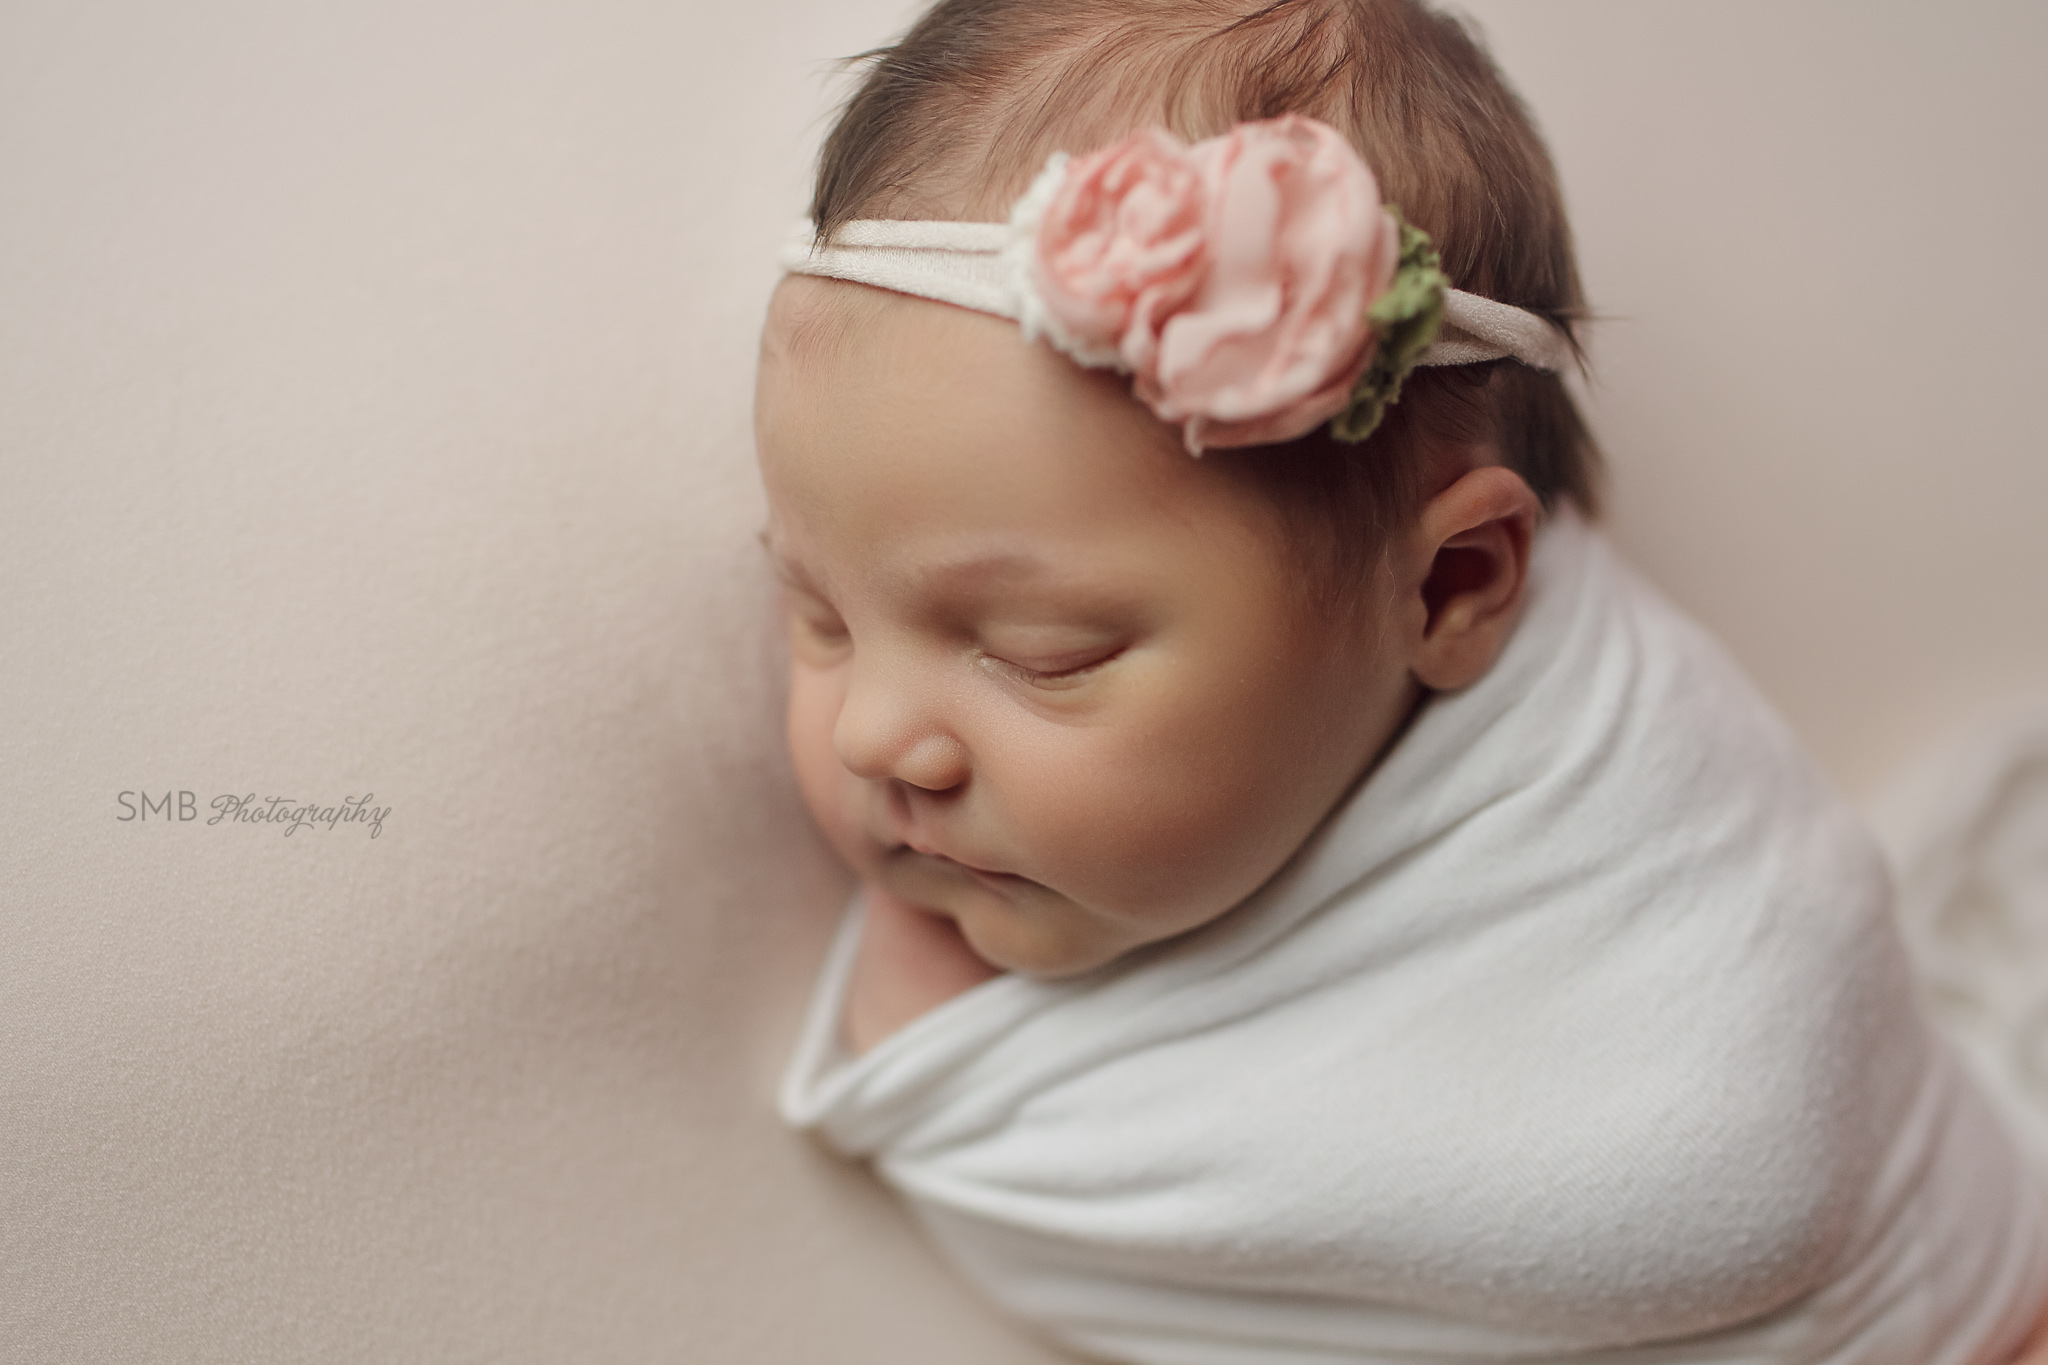 Profile of newborn girl